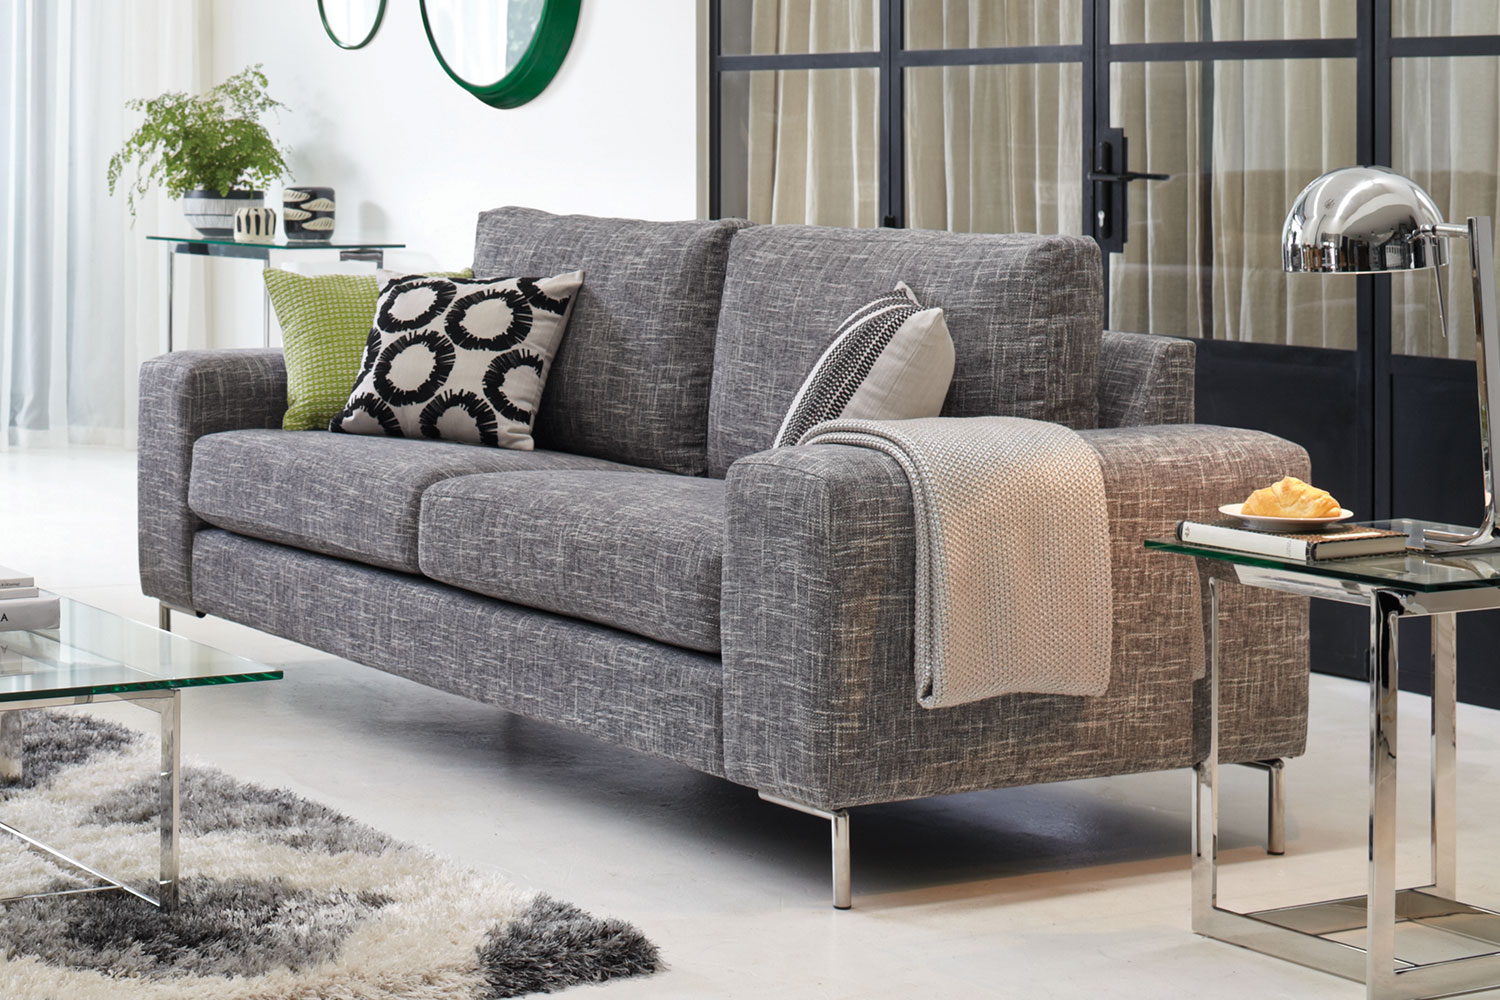 3 seater fabric sofa sellers andros by evan john philp harvey norman new zealand